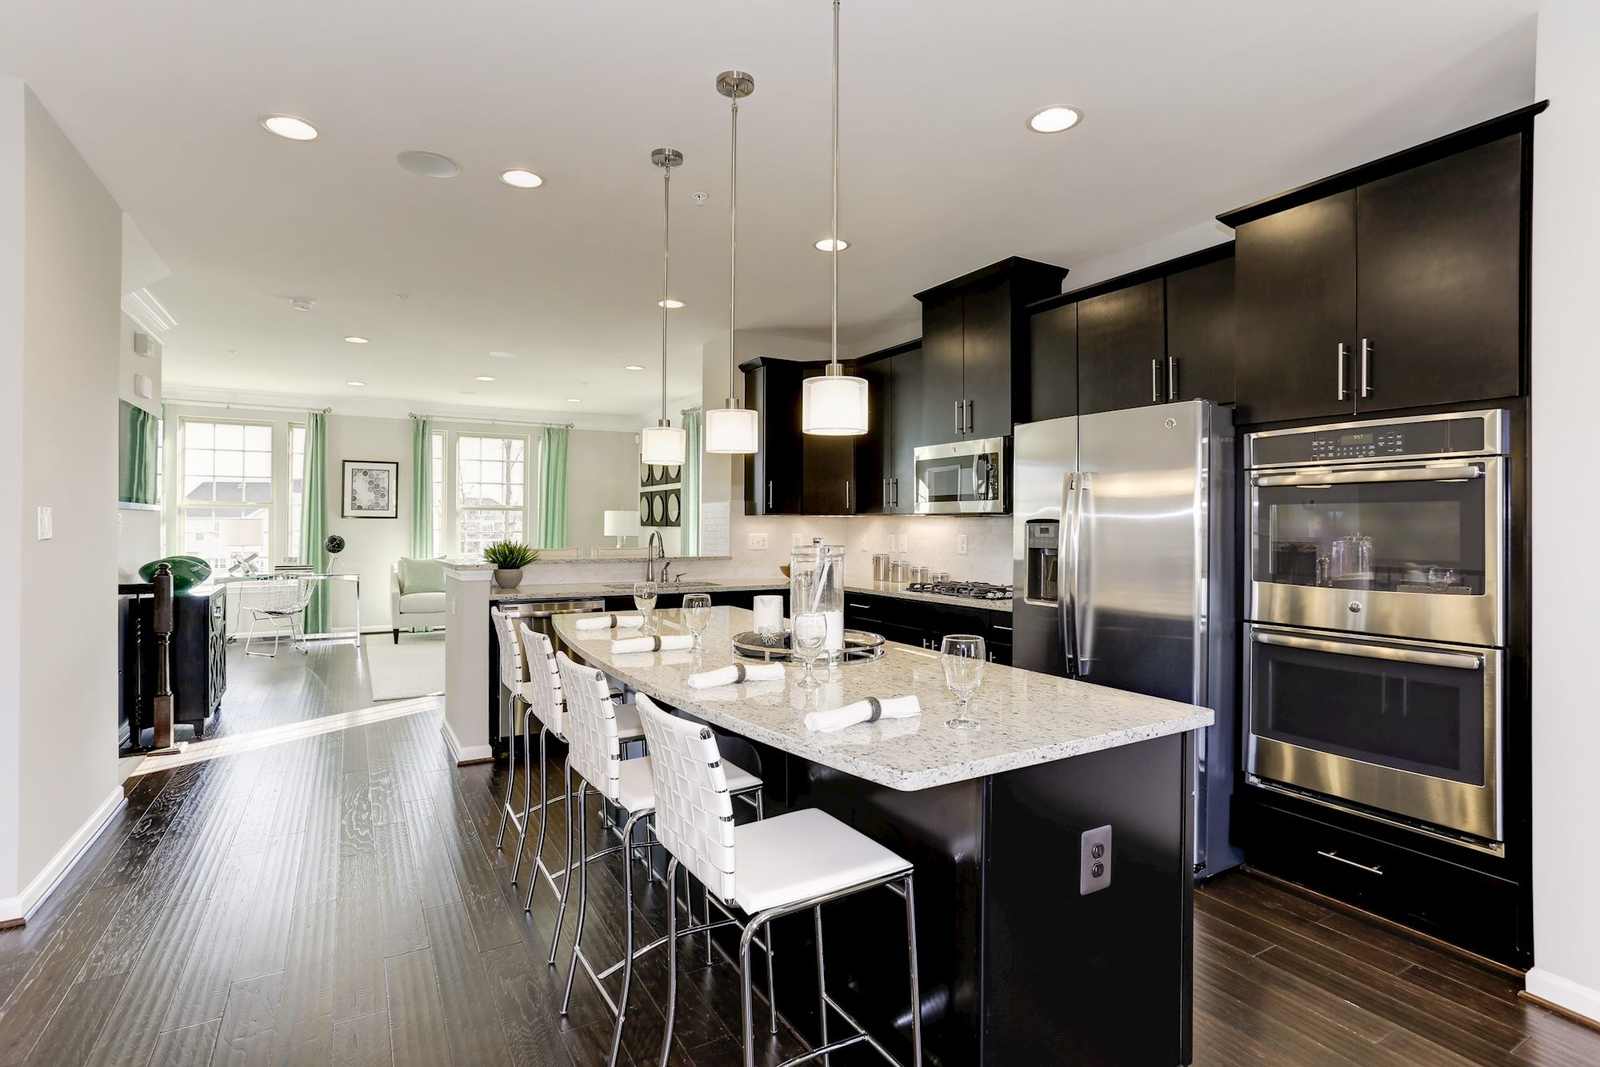 Stainless steel appliances and granite counter tops are included allowing you even more ways to tailor your home to your tastes.